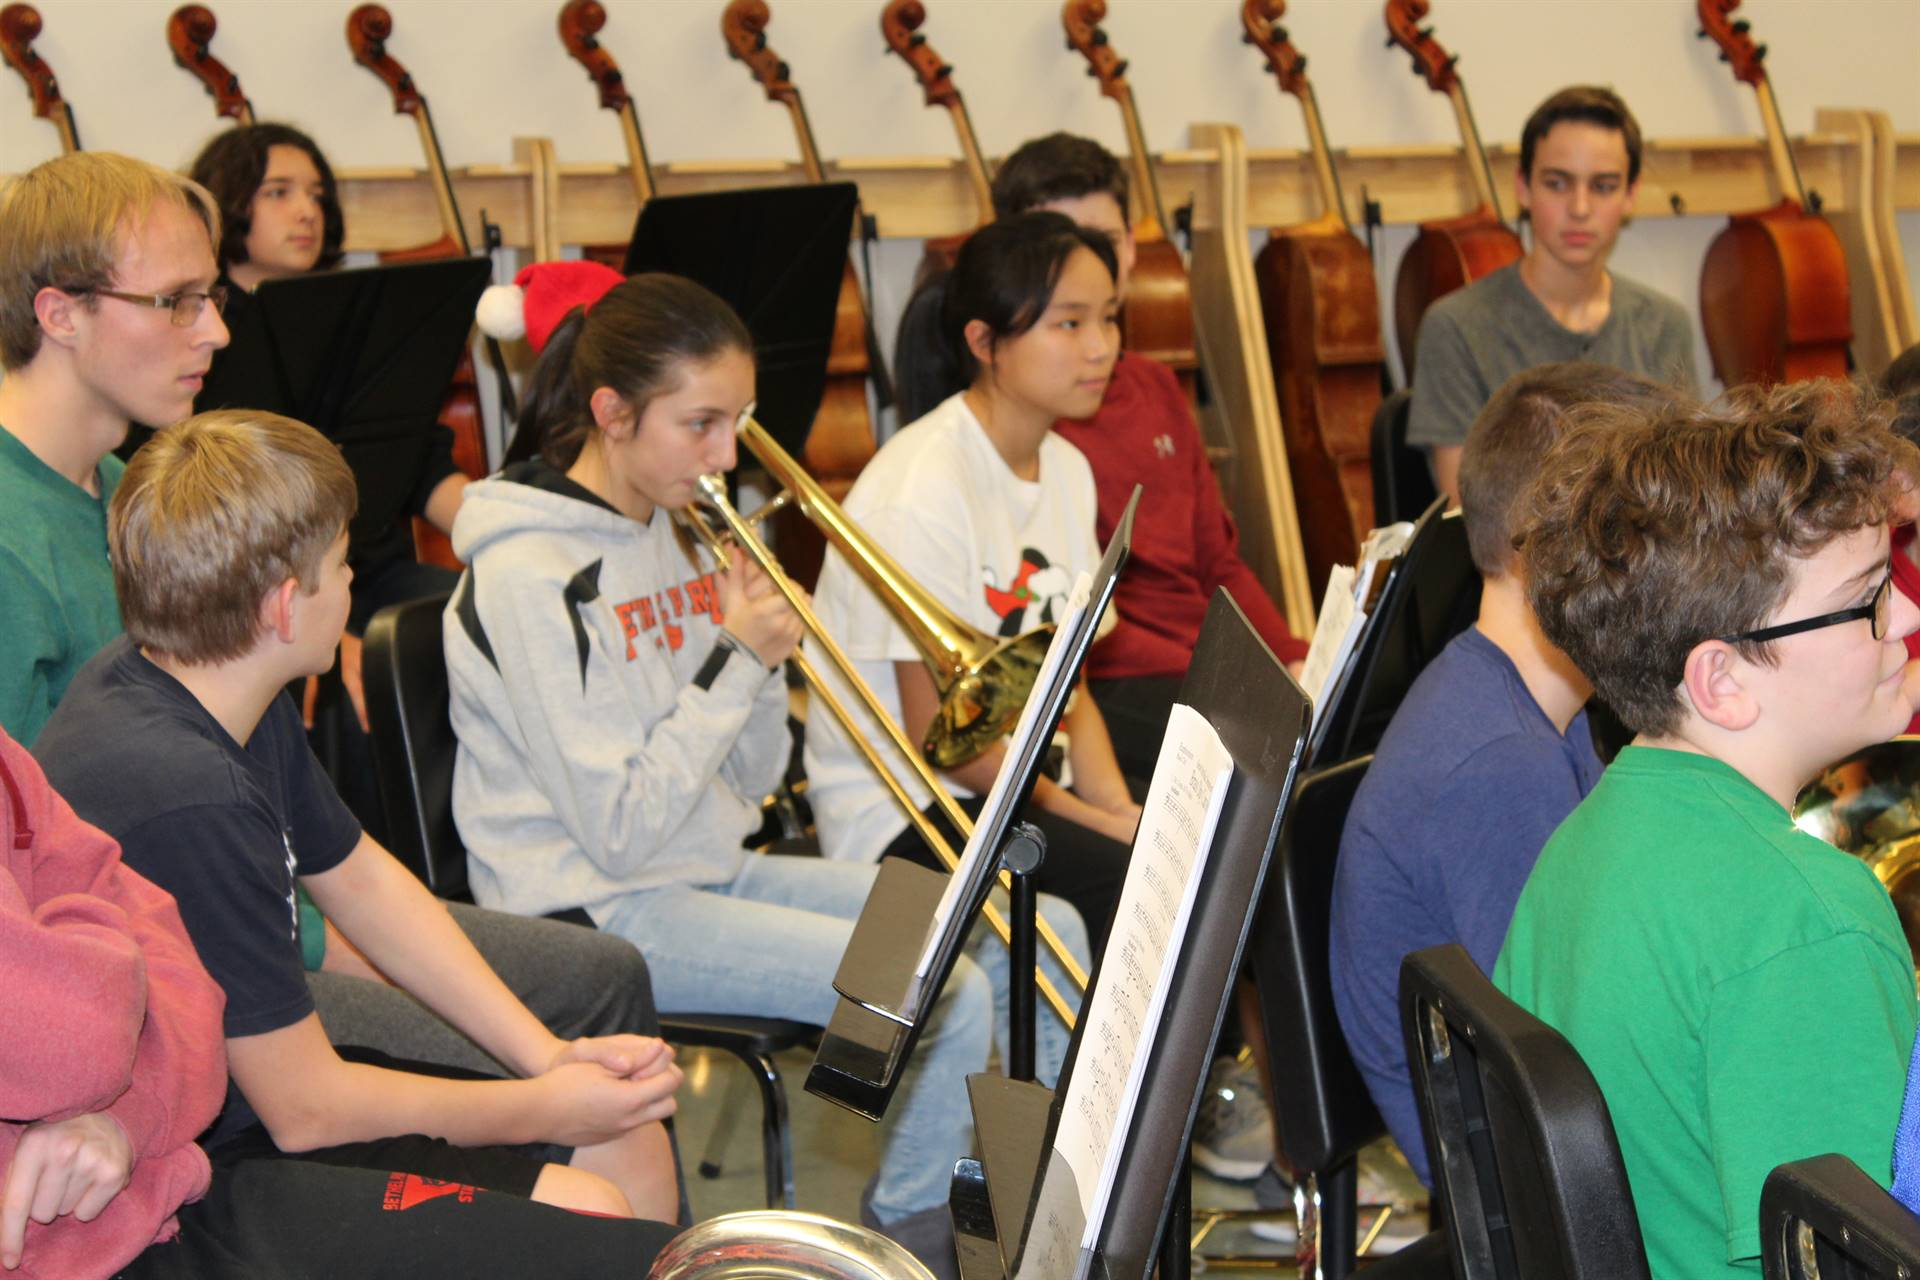 Students rehearse for the Brass Day concert